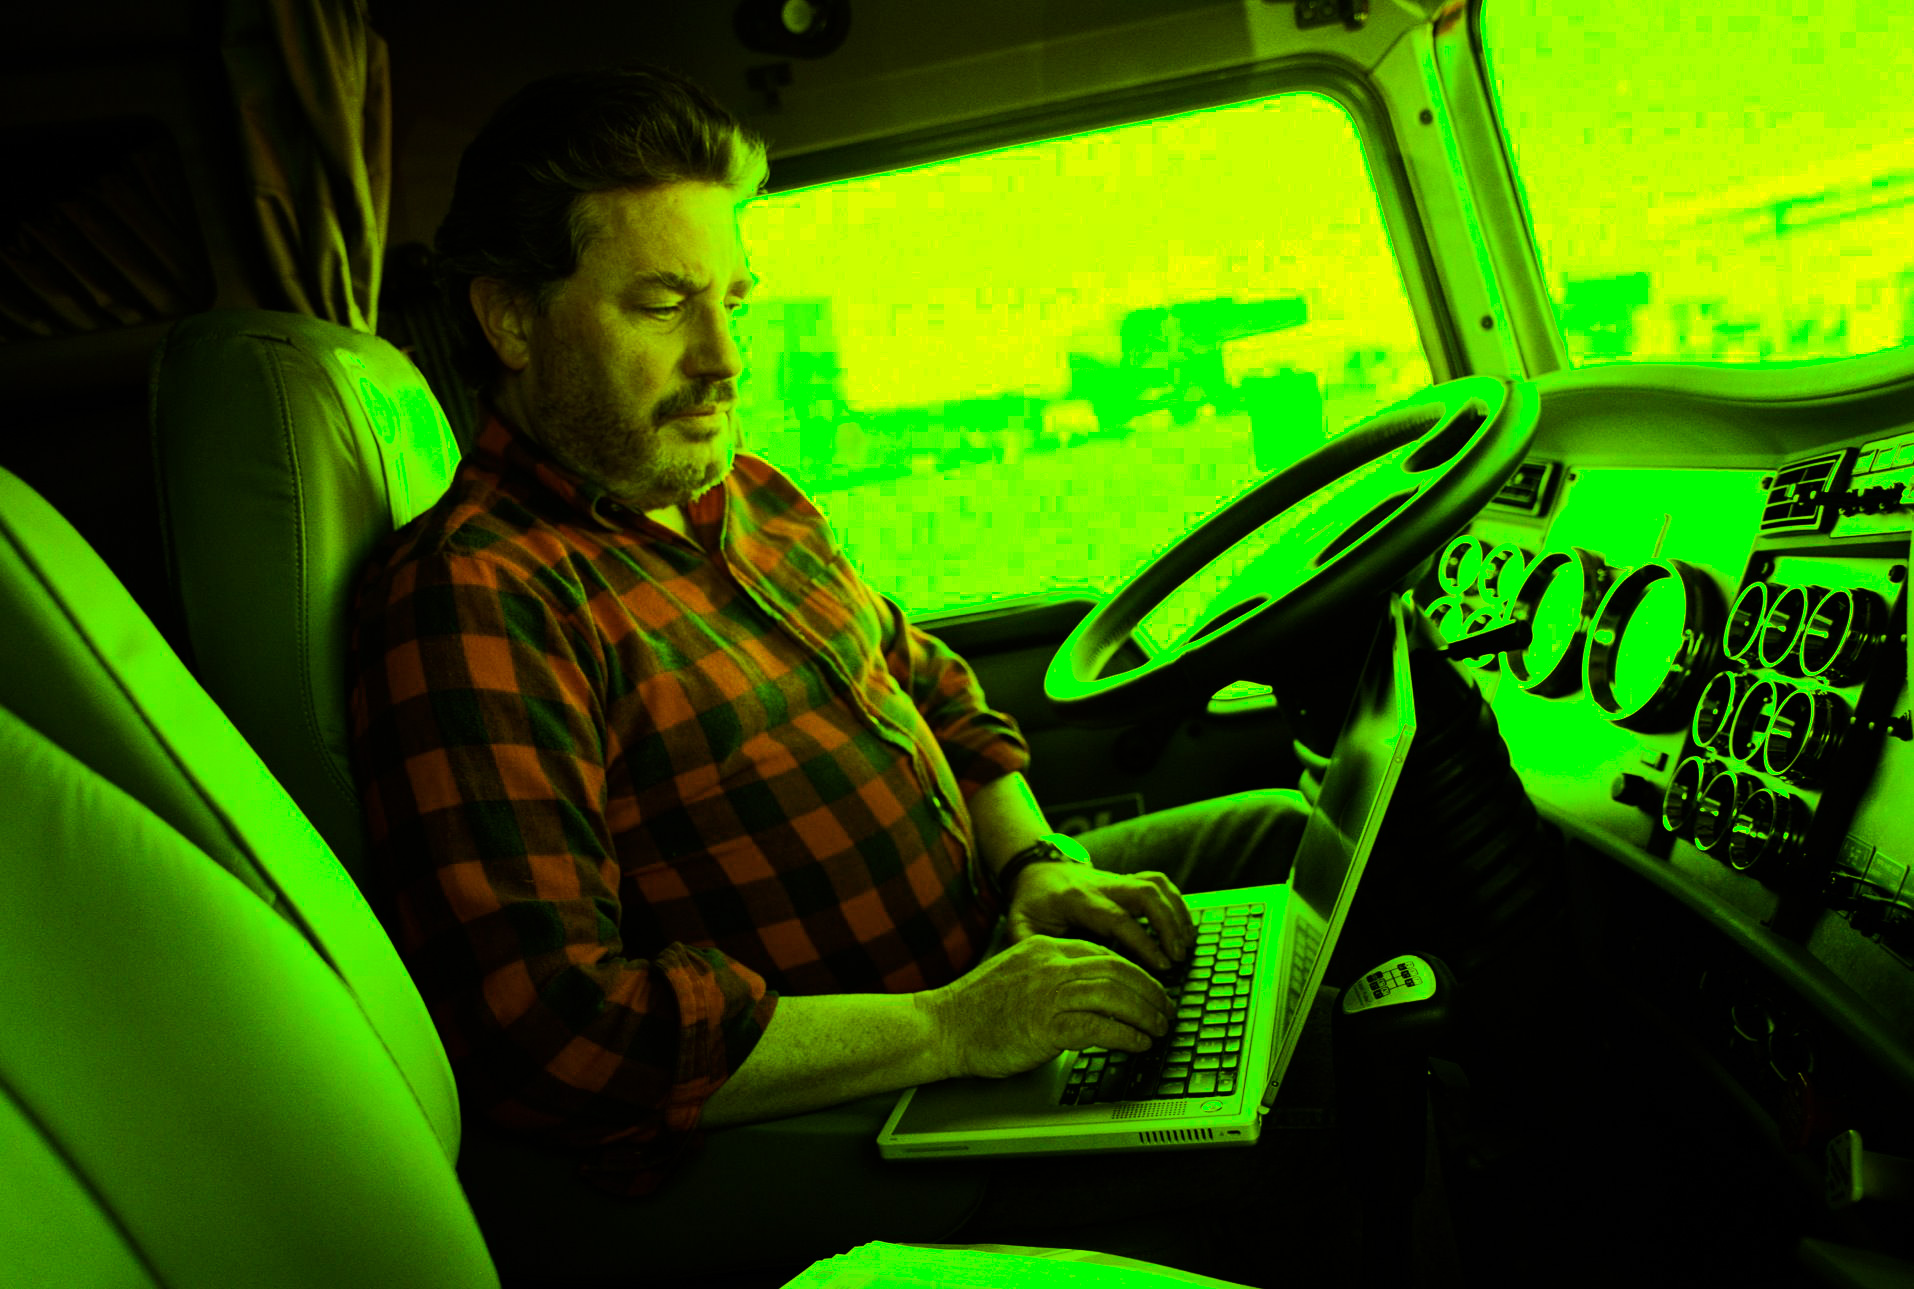 Driver reviewing online